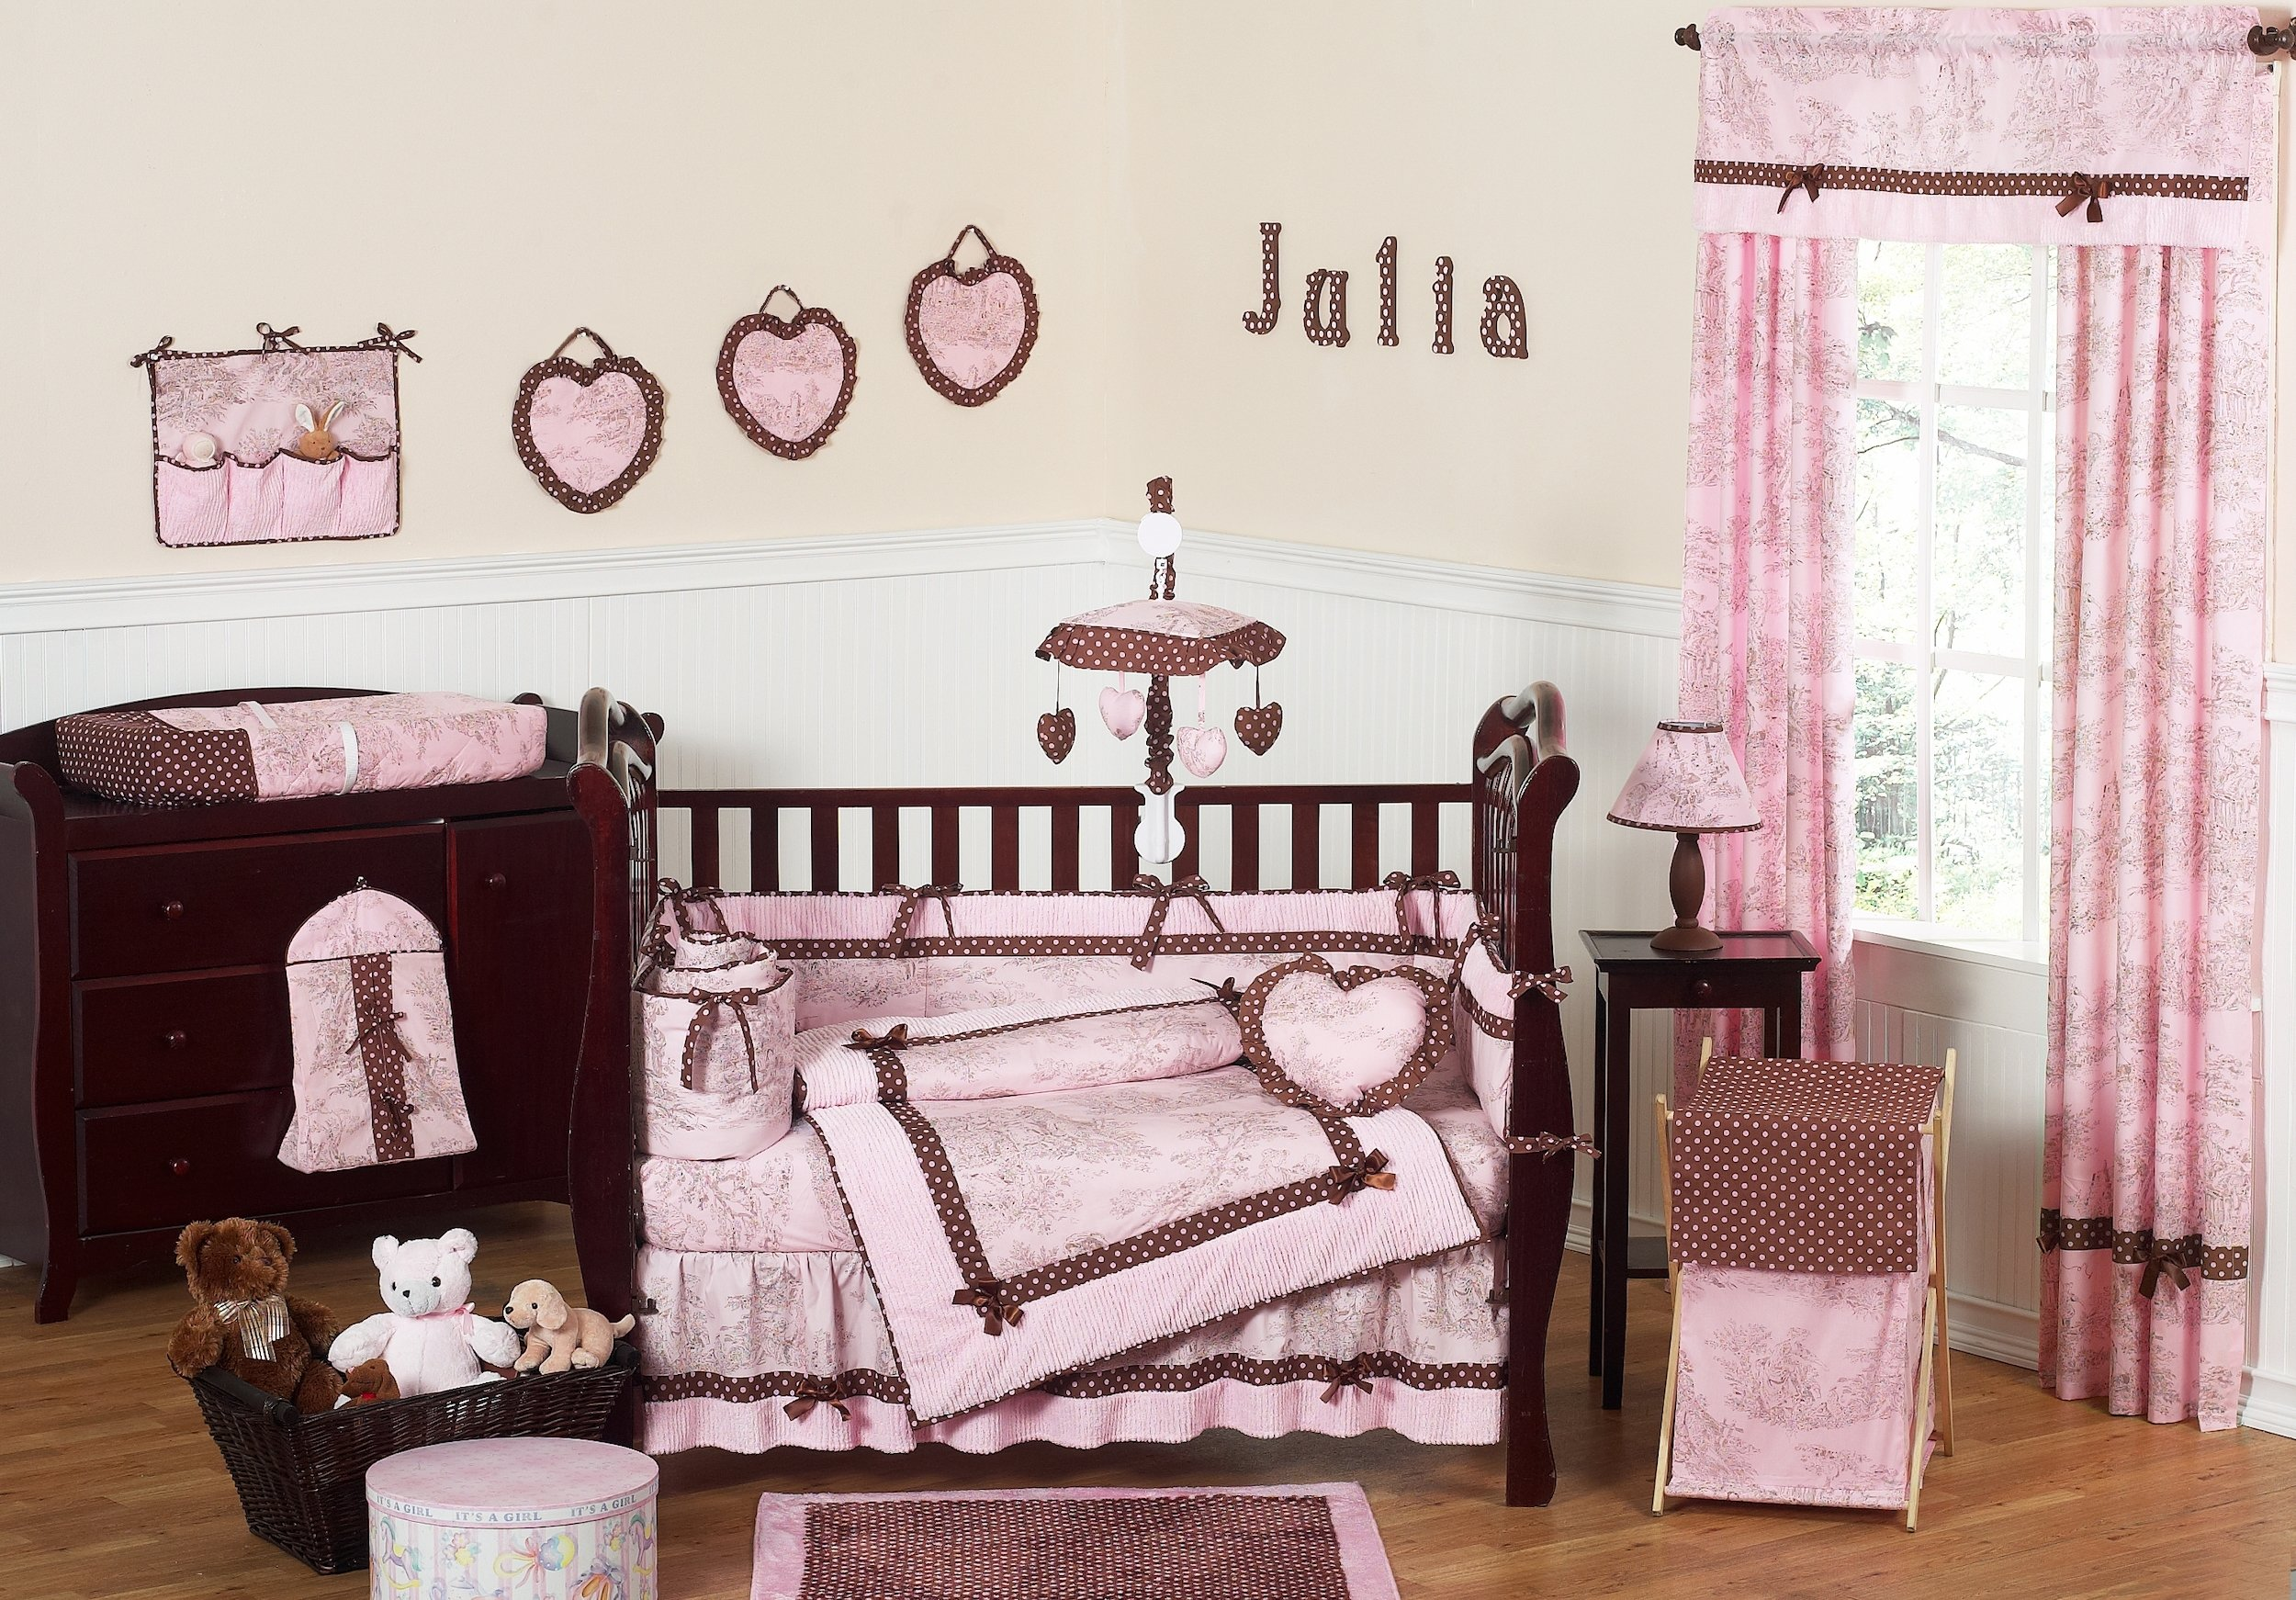 10 Lovely Pink And Brown Nursery Ideas pink and brown toile baby crib bedding 9pc girl nursery set loversiq 2020